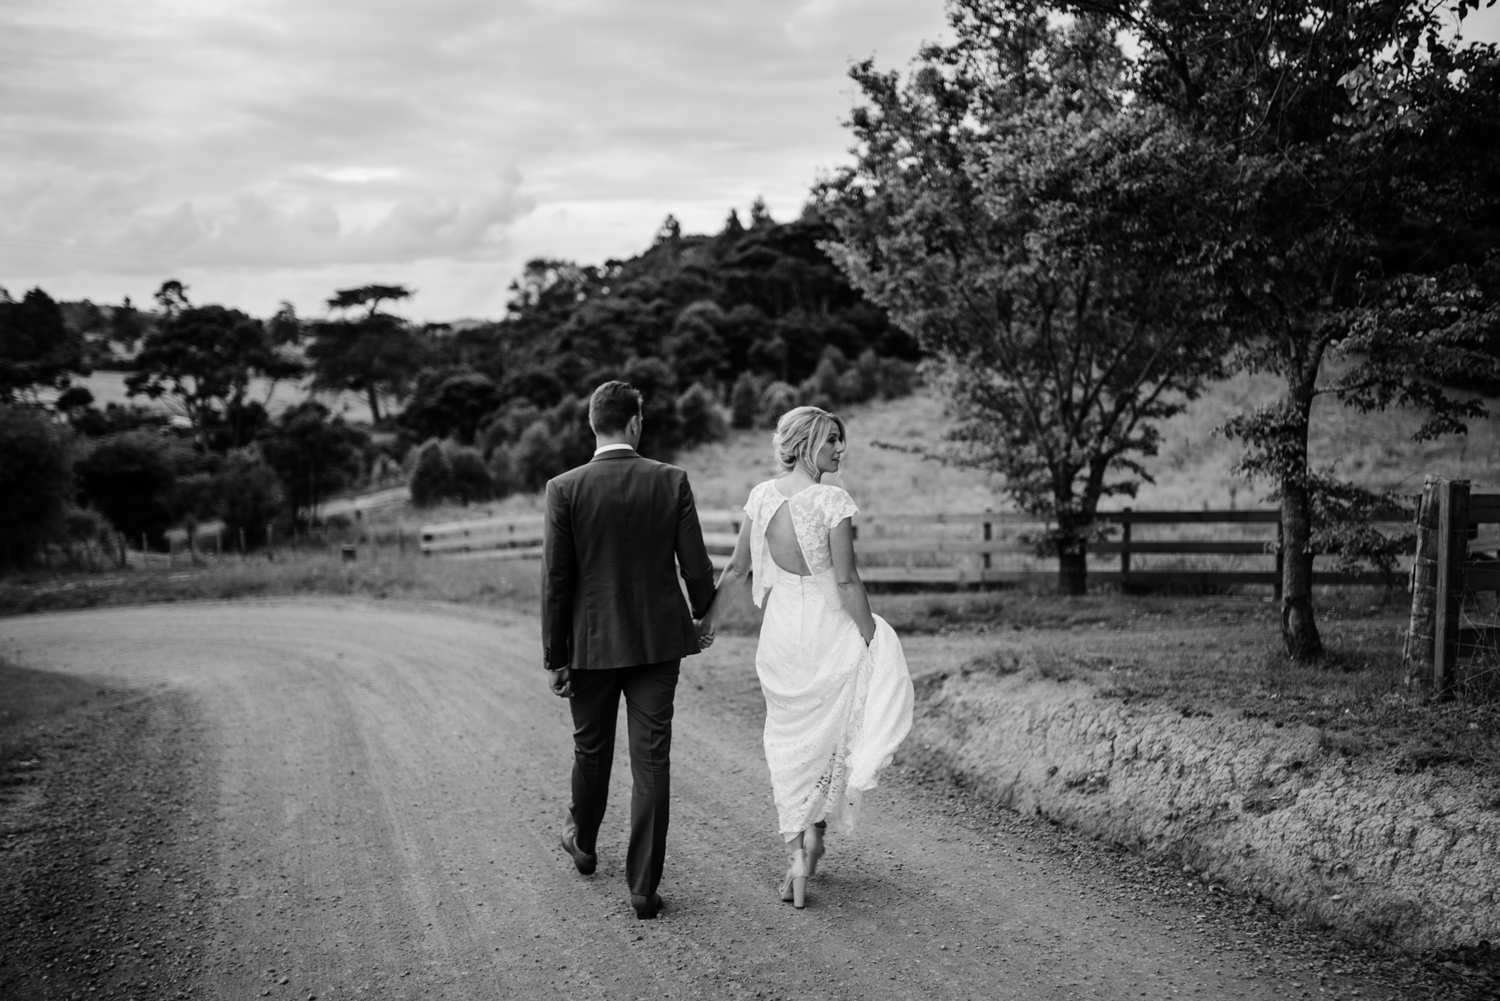 new-zealand-wedding-film-photographer-ryan-flynn-0043.JPG